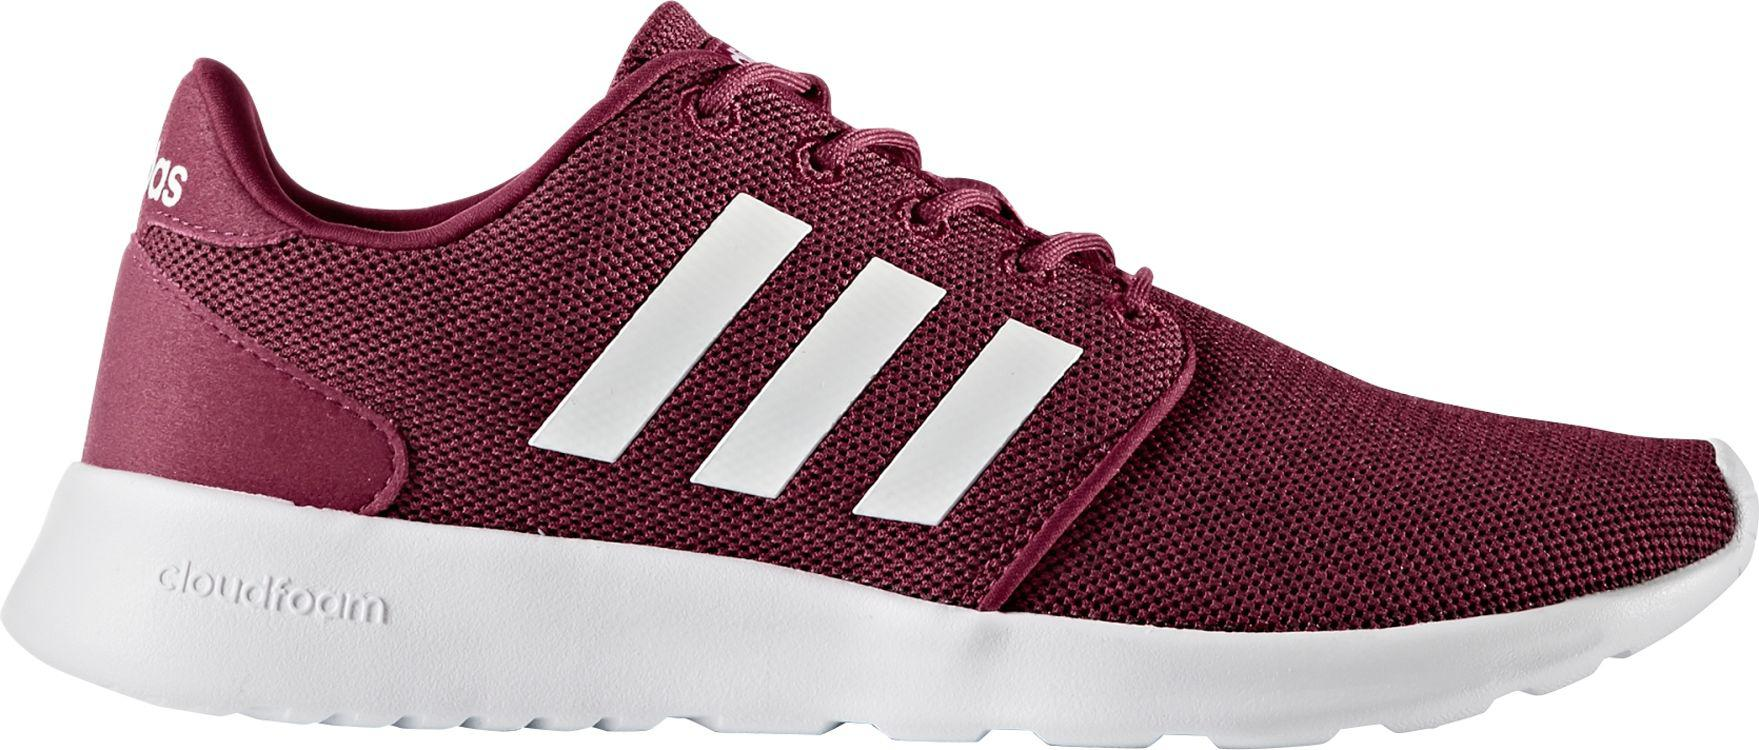 adidas cloudfoam red and white